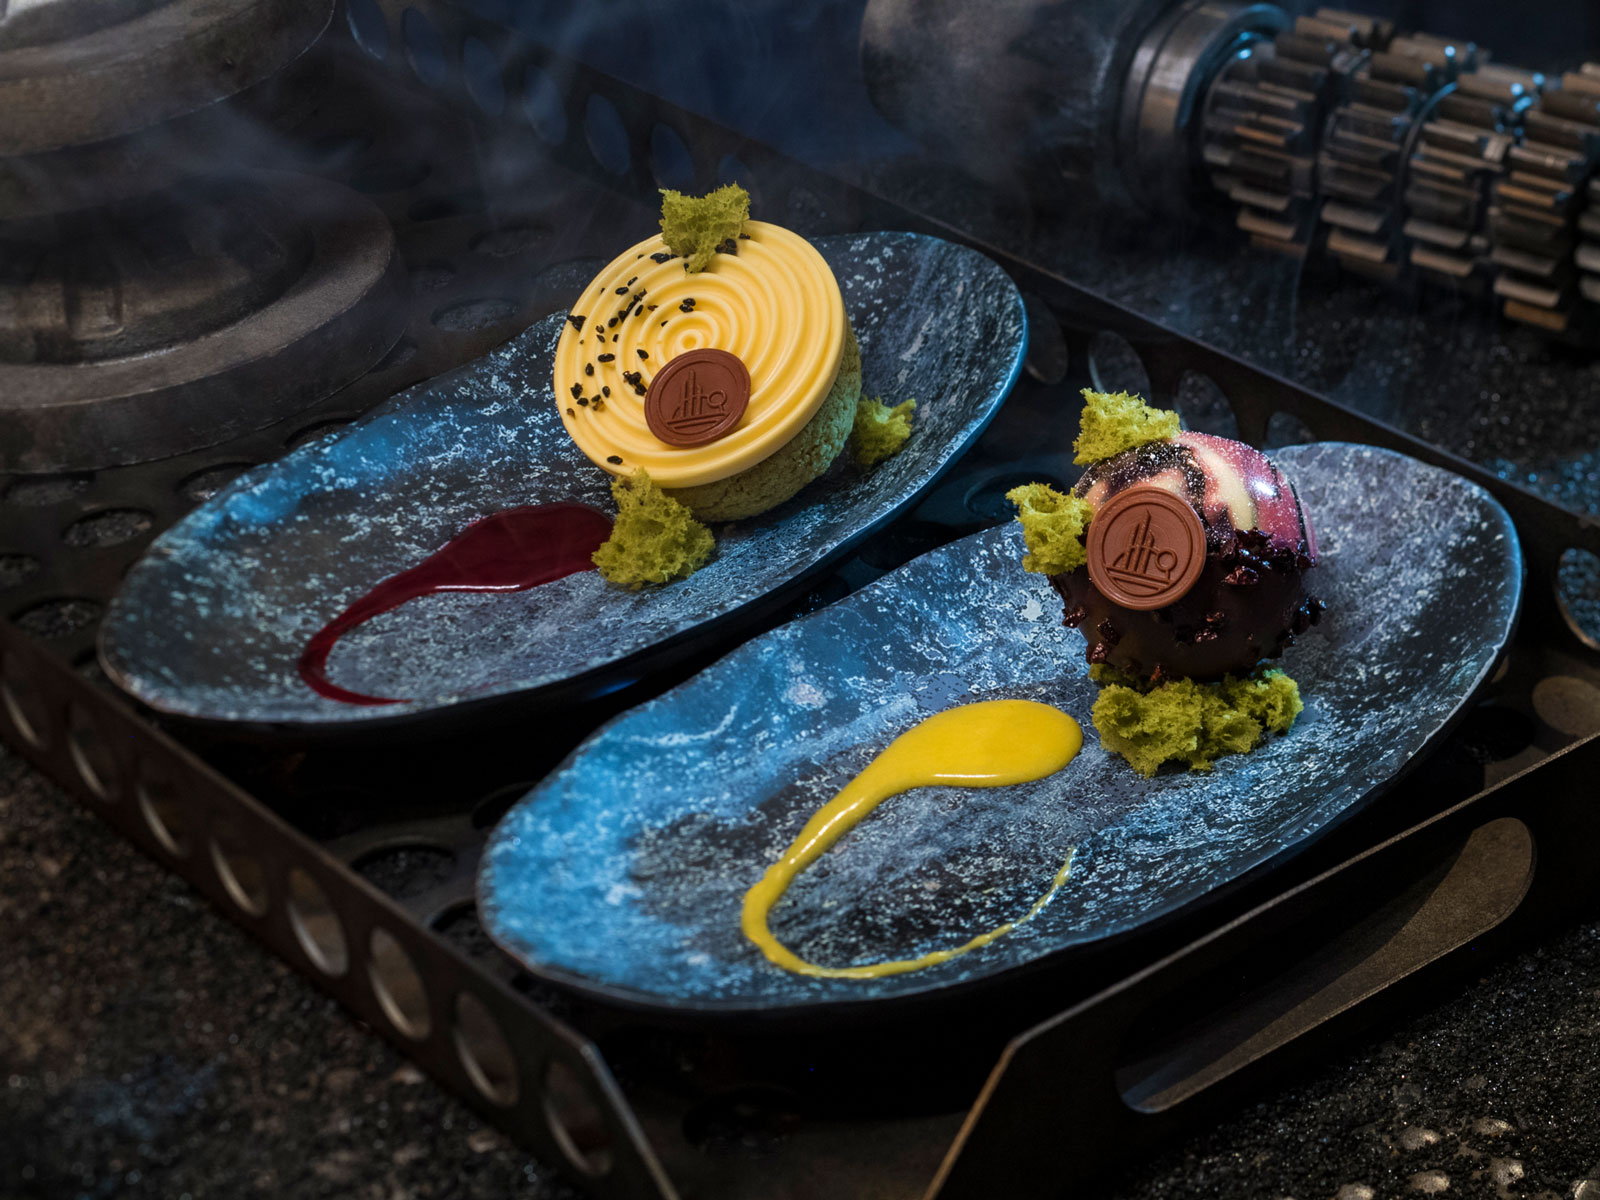 Star Wars Galaxy's Edge Desserts